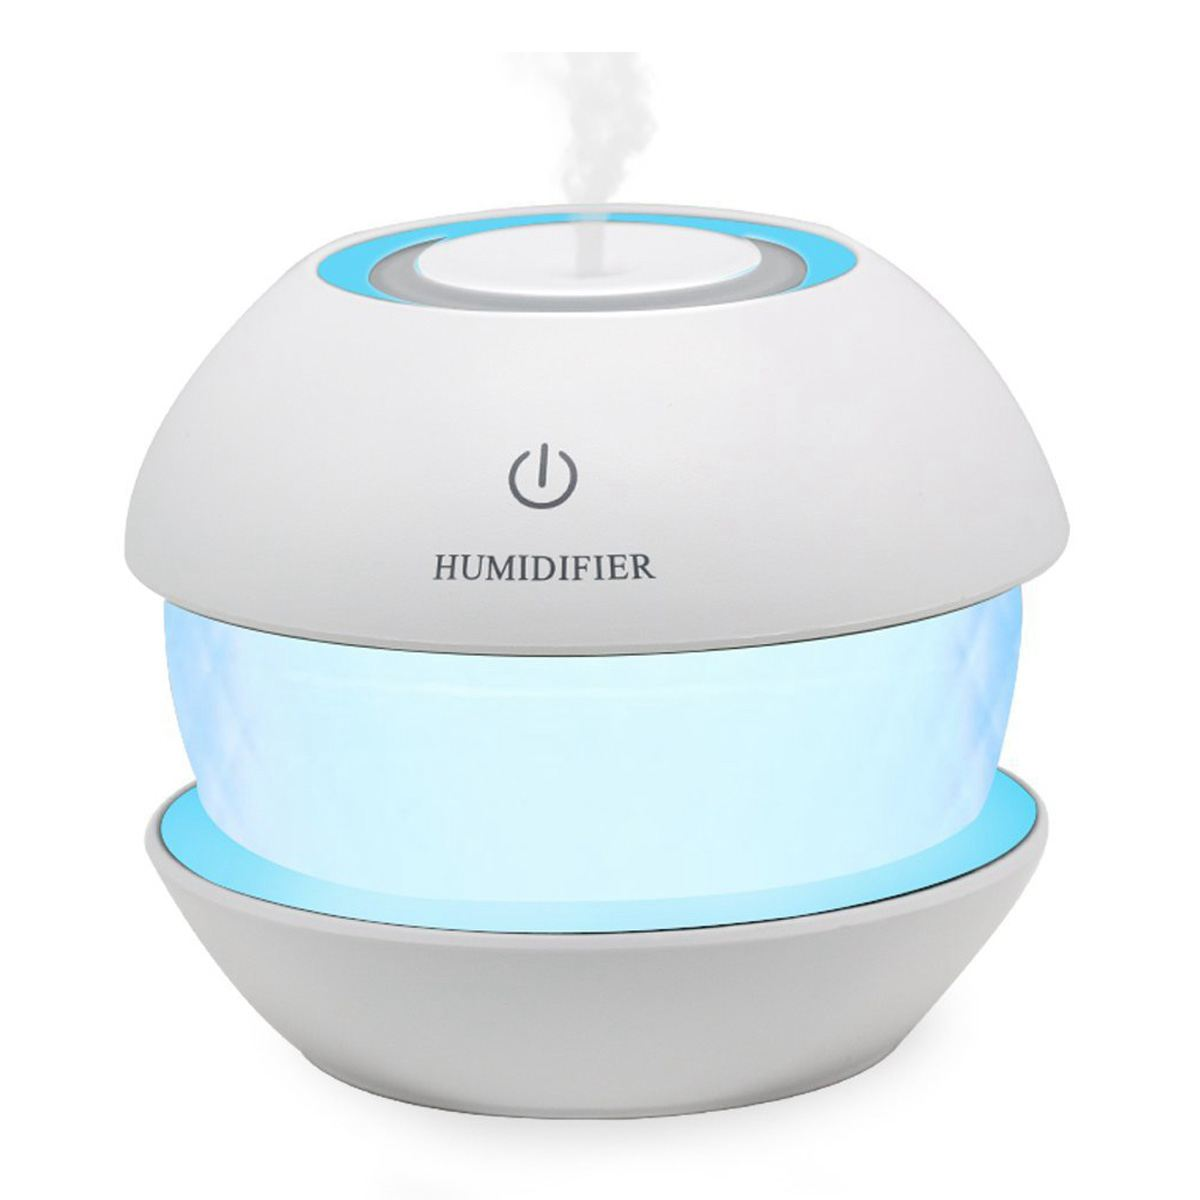 Ultrasonic Cool Mist Humidifiers Diffuser - Air Humidifier For Car, Office, Spa, Yoga, 150ml Round Spray USB Humidifier With L купить в Москве 2019